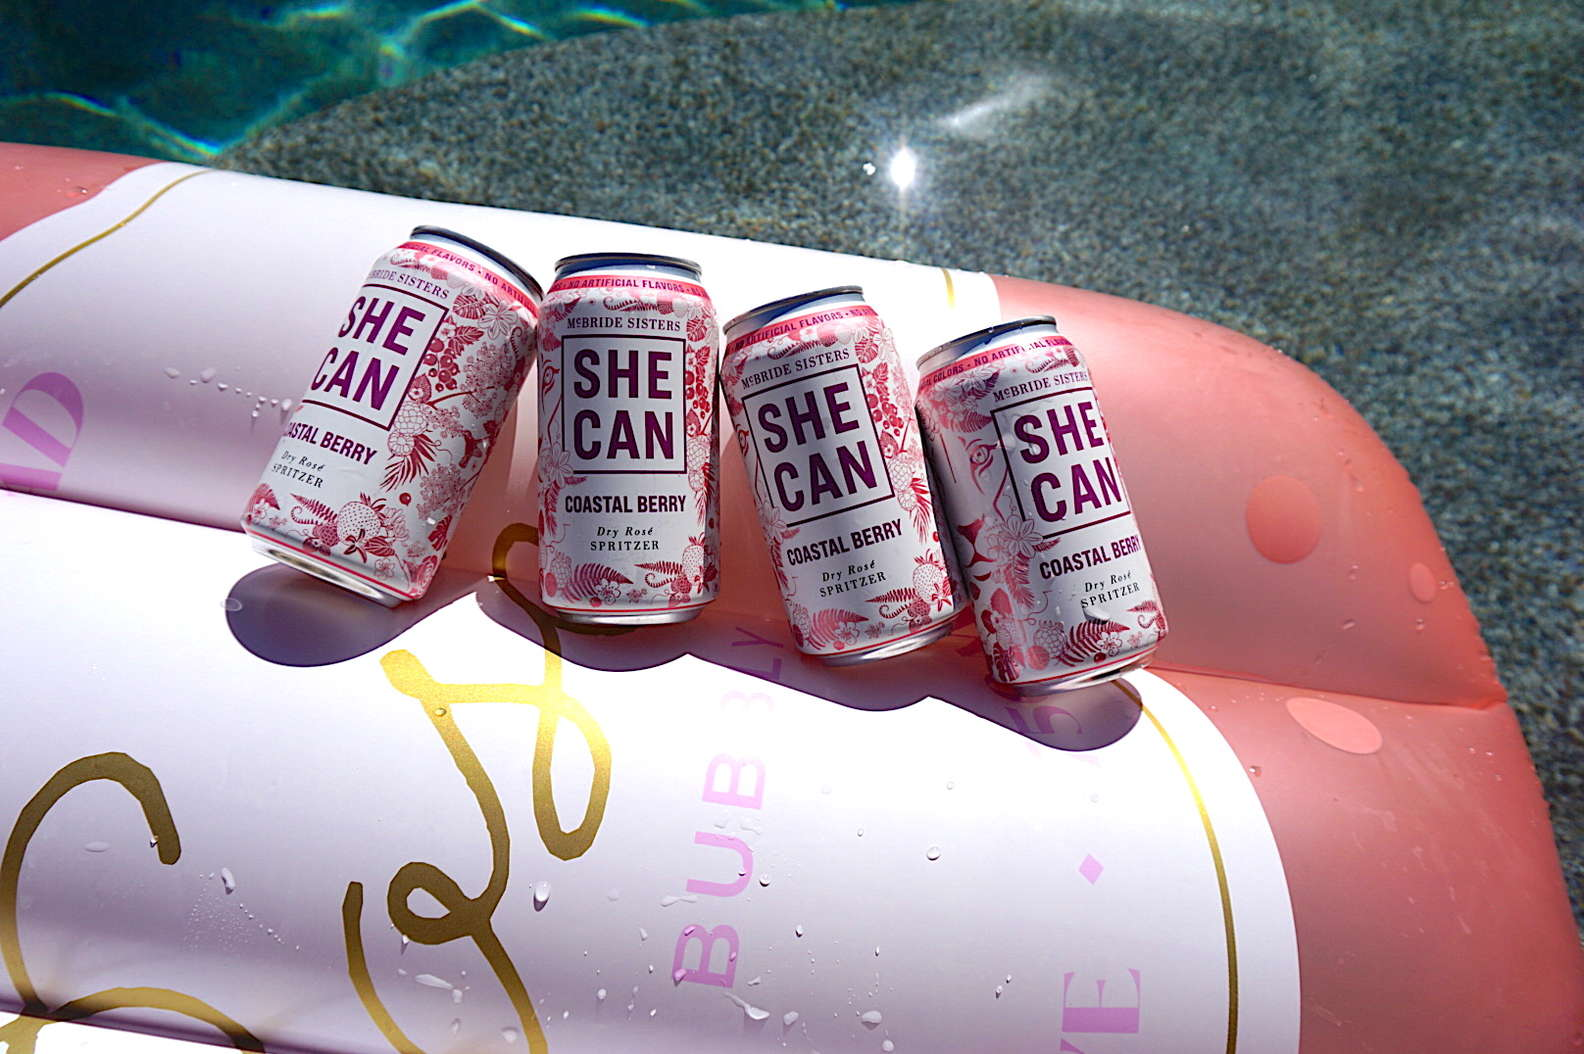 SHE CAN can wine coastal berry flavor can wine McBride Sisters